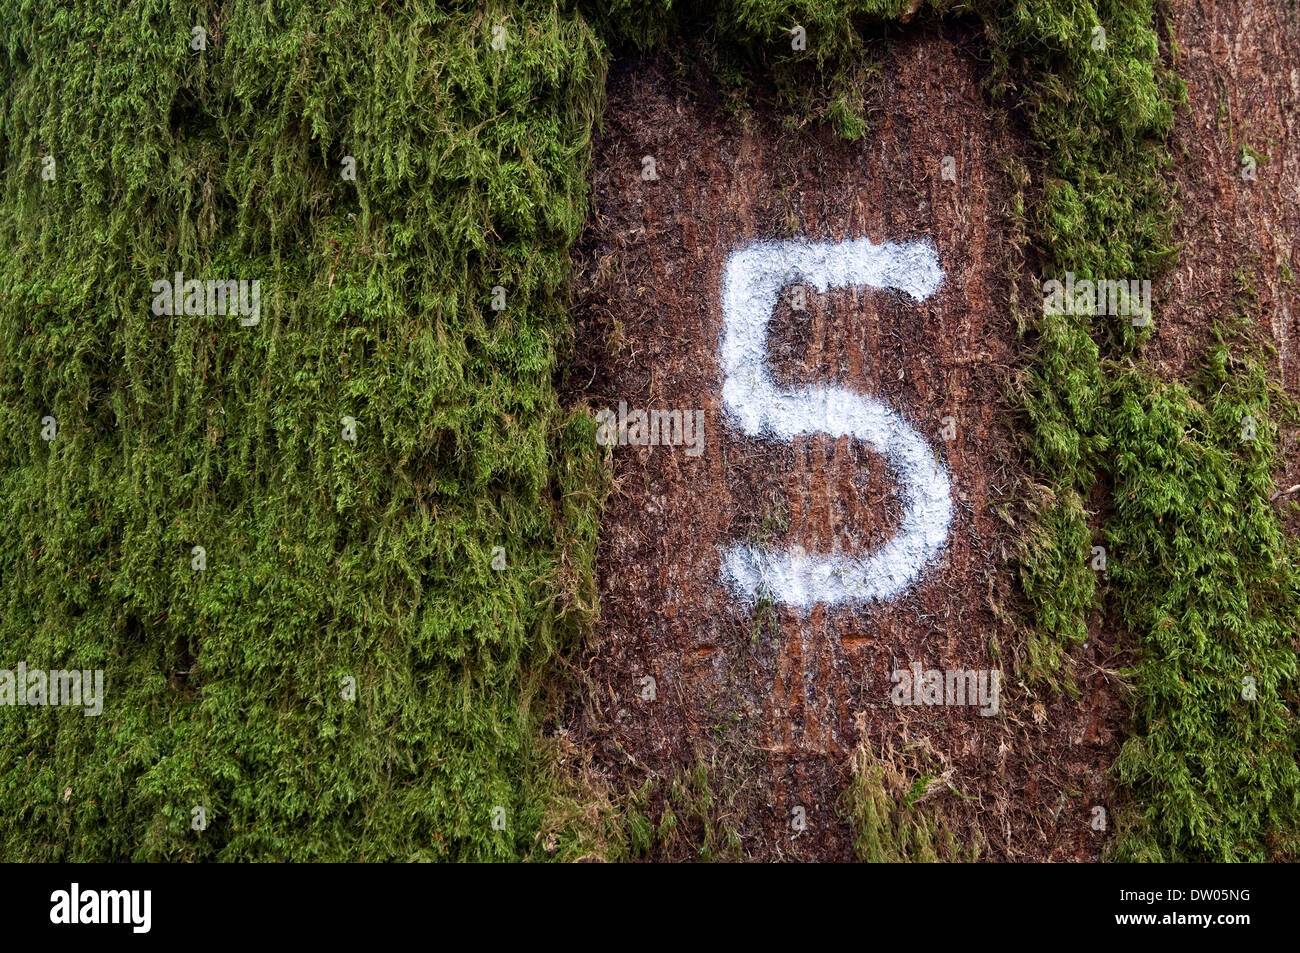 white number 5 painted on tree trunk bark - Stock Image